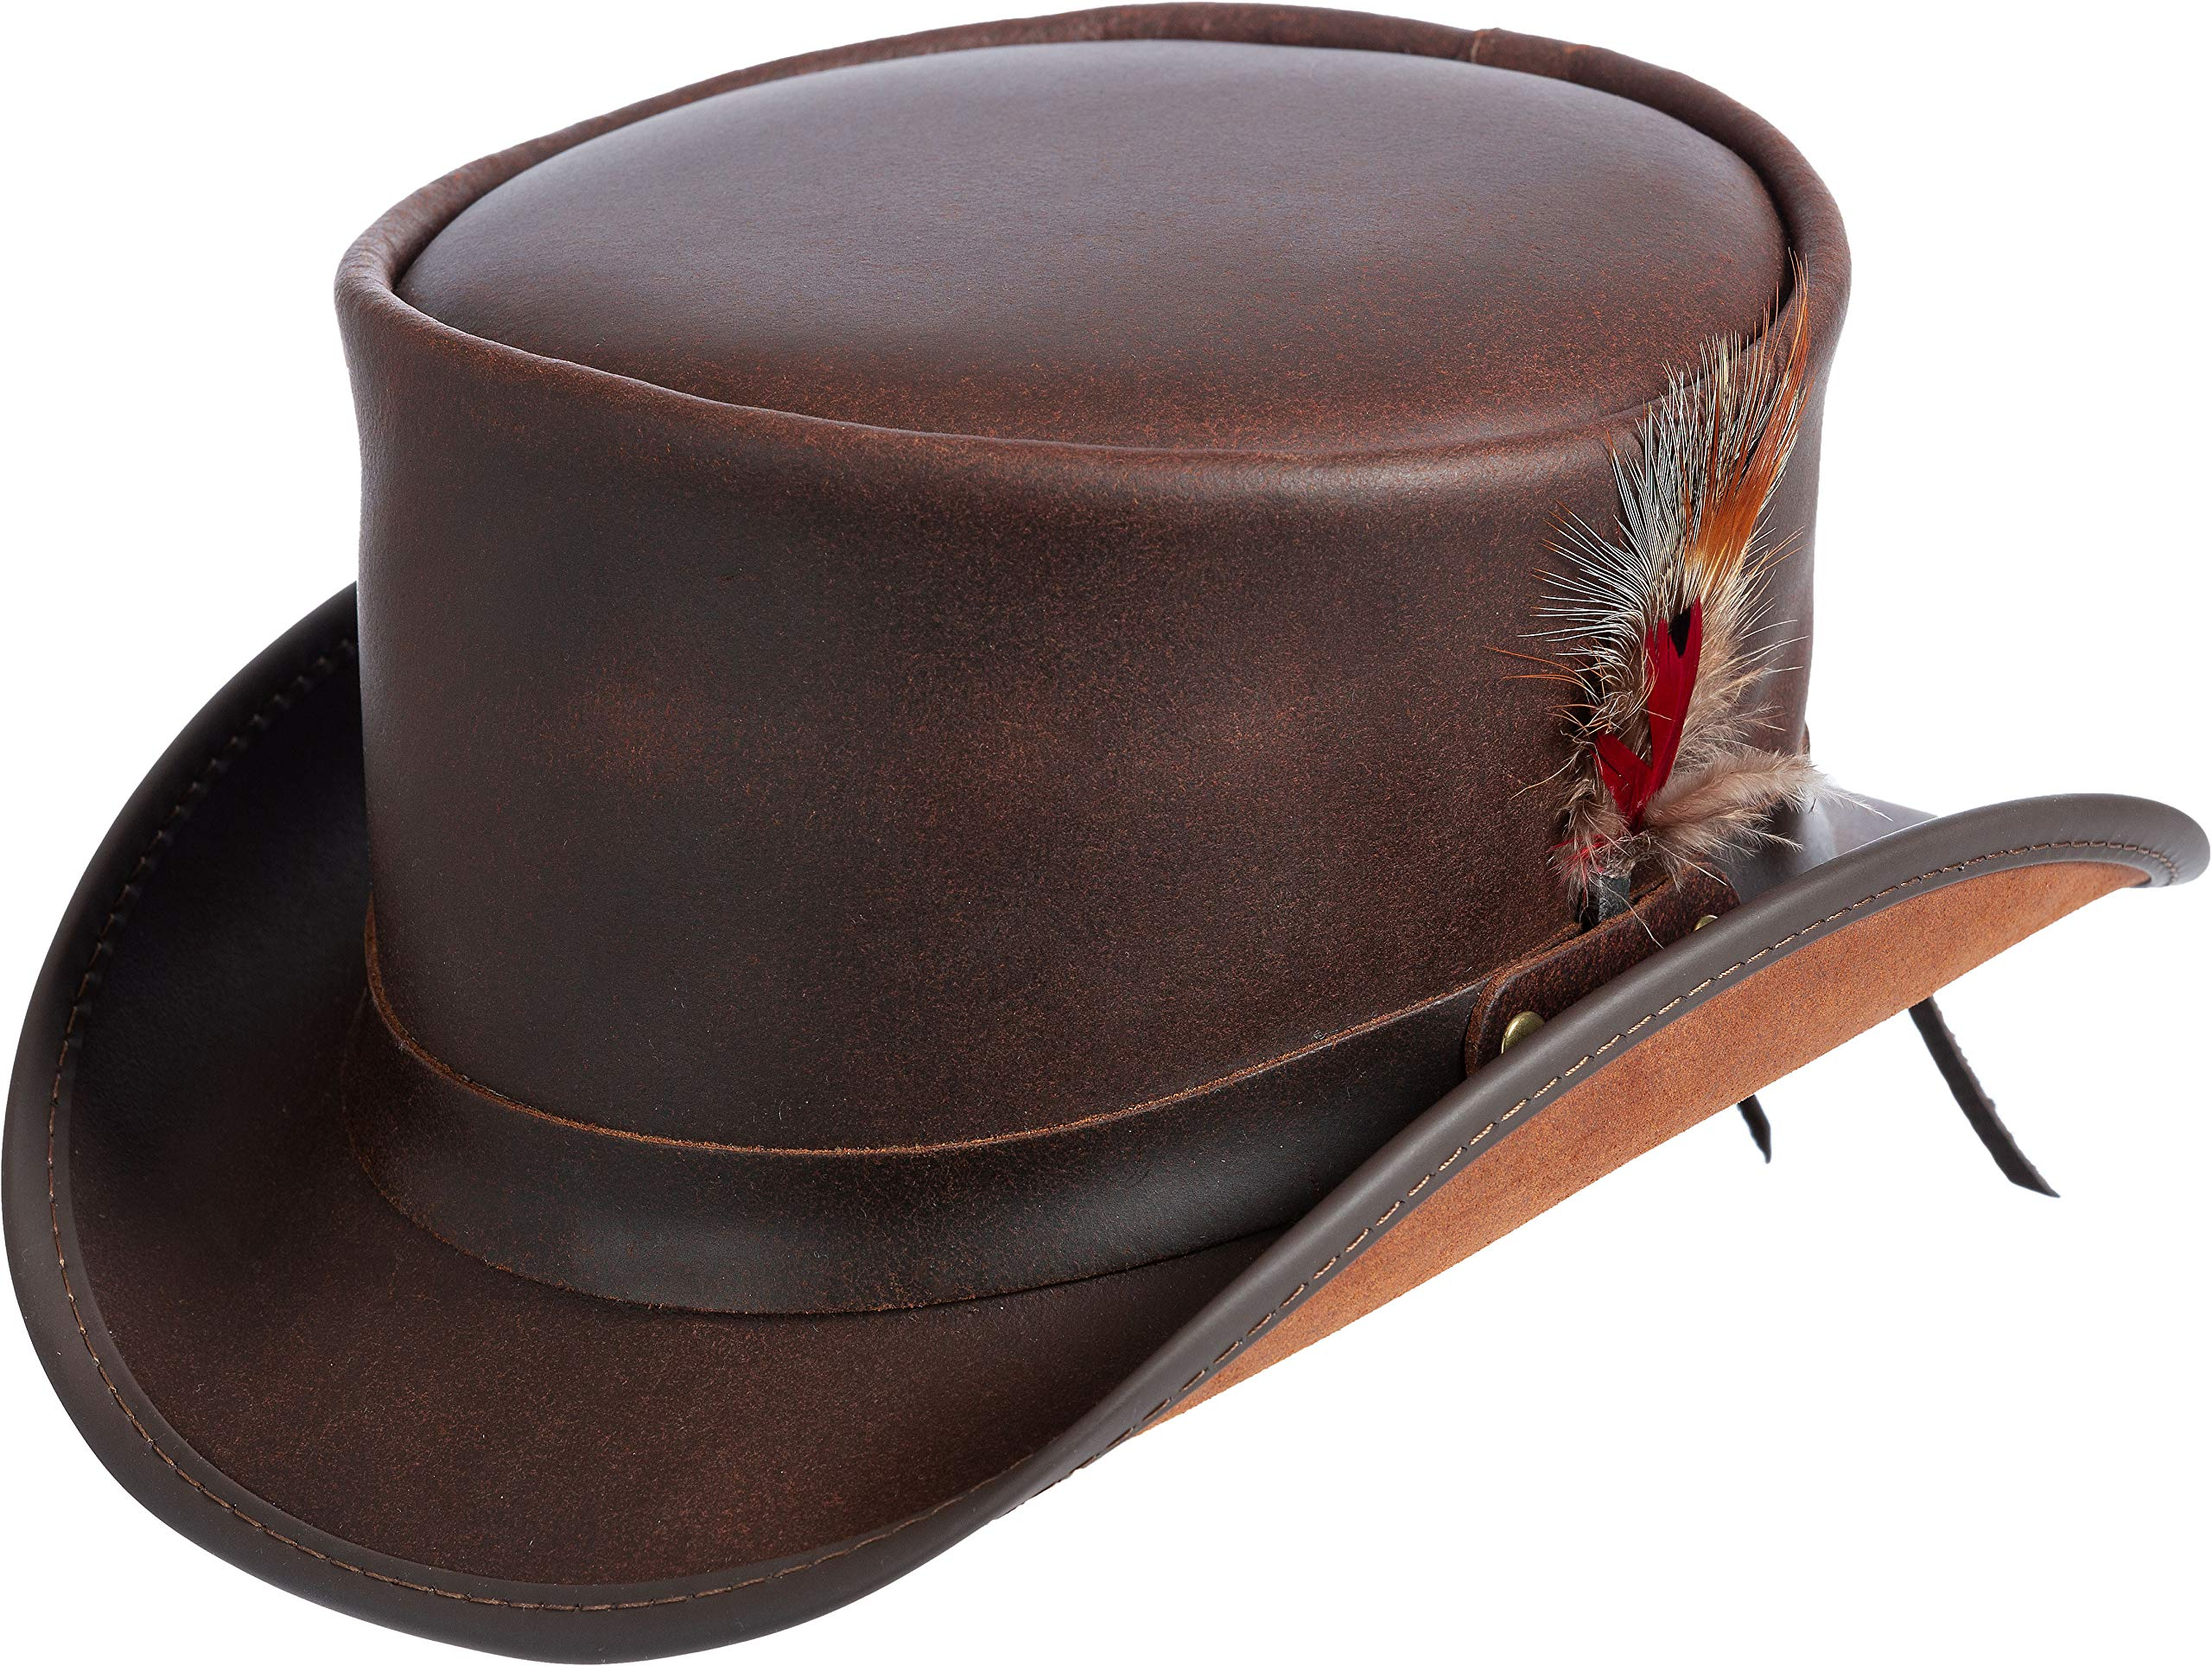 Steampunk Victorian Marlow Leather Top Hat Brown